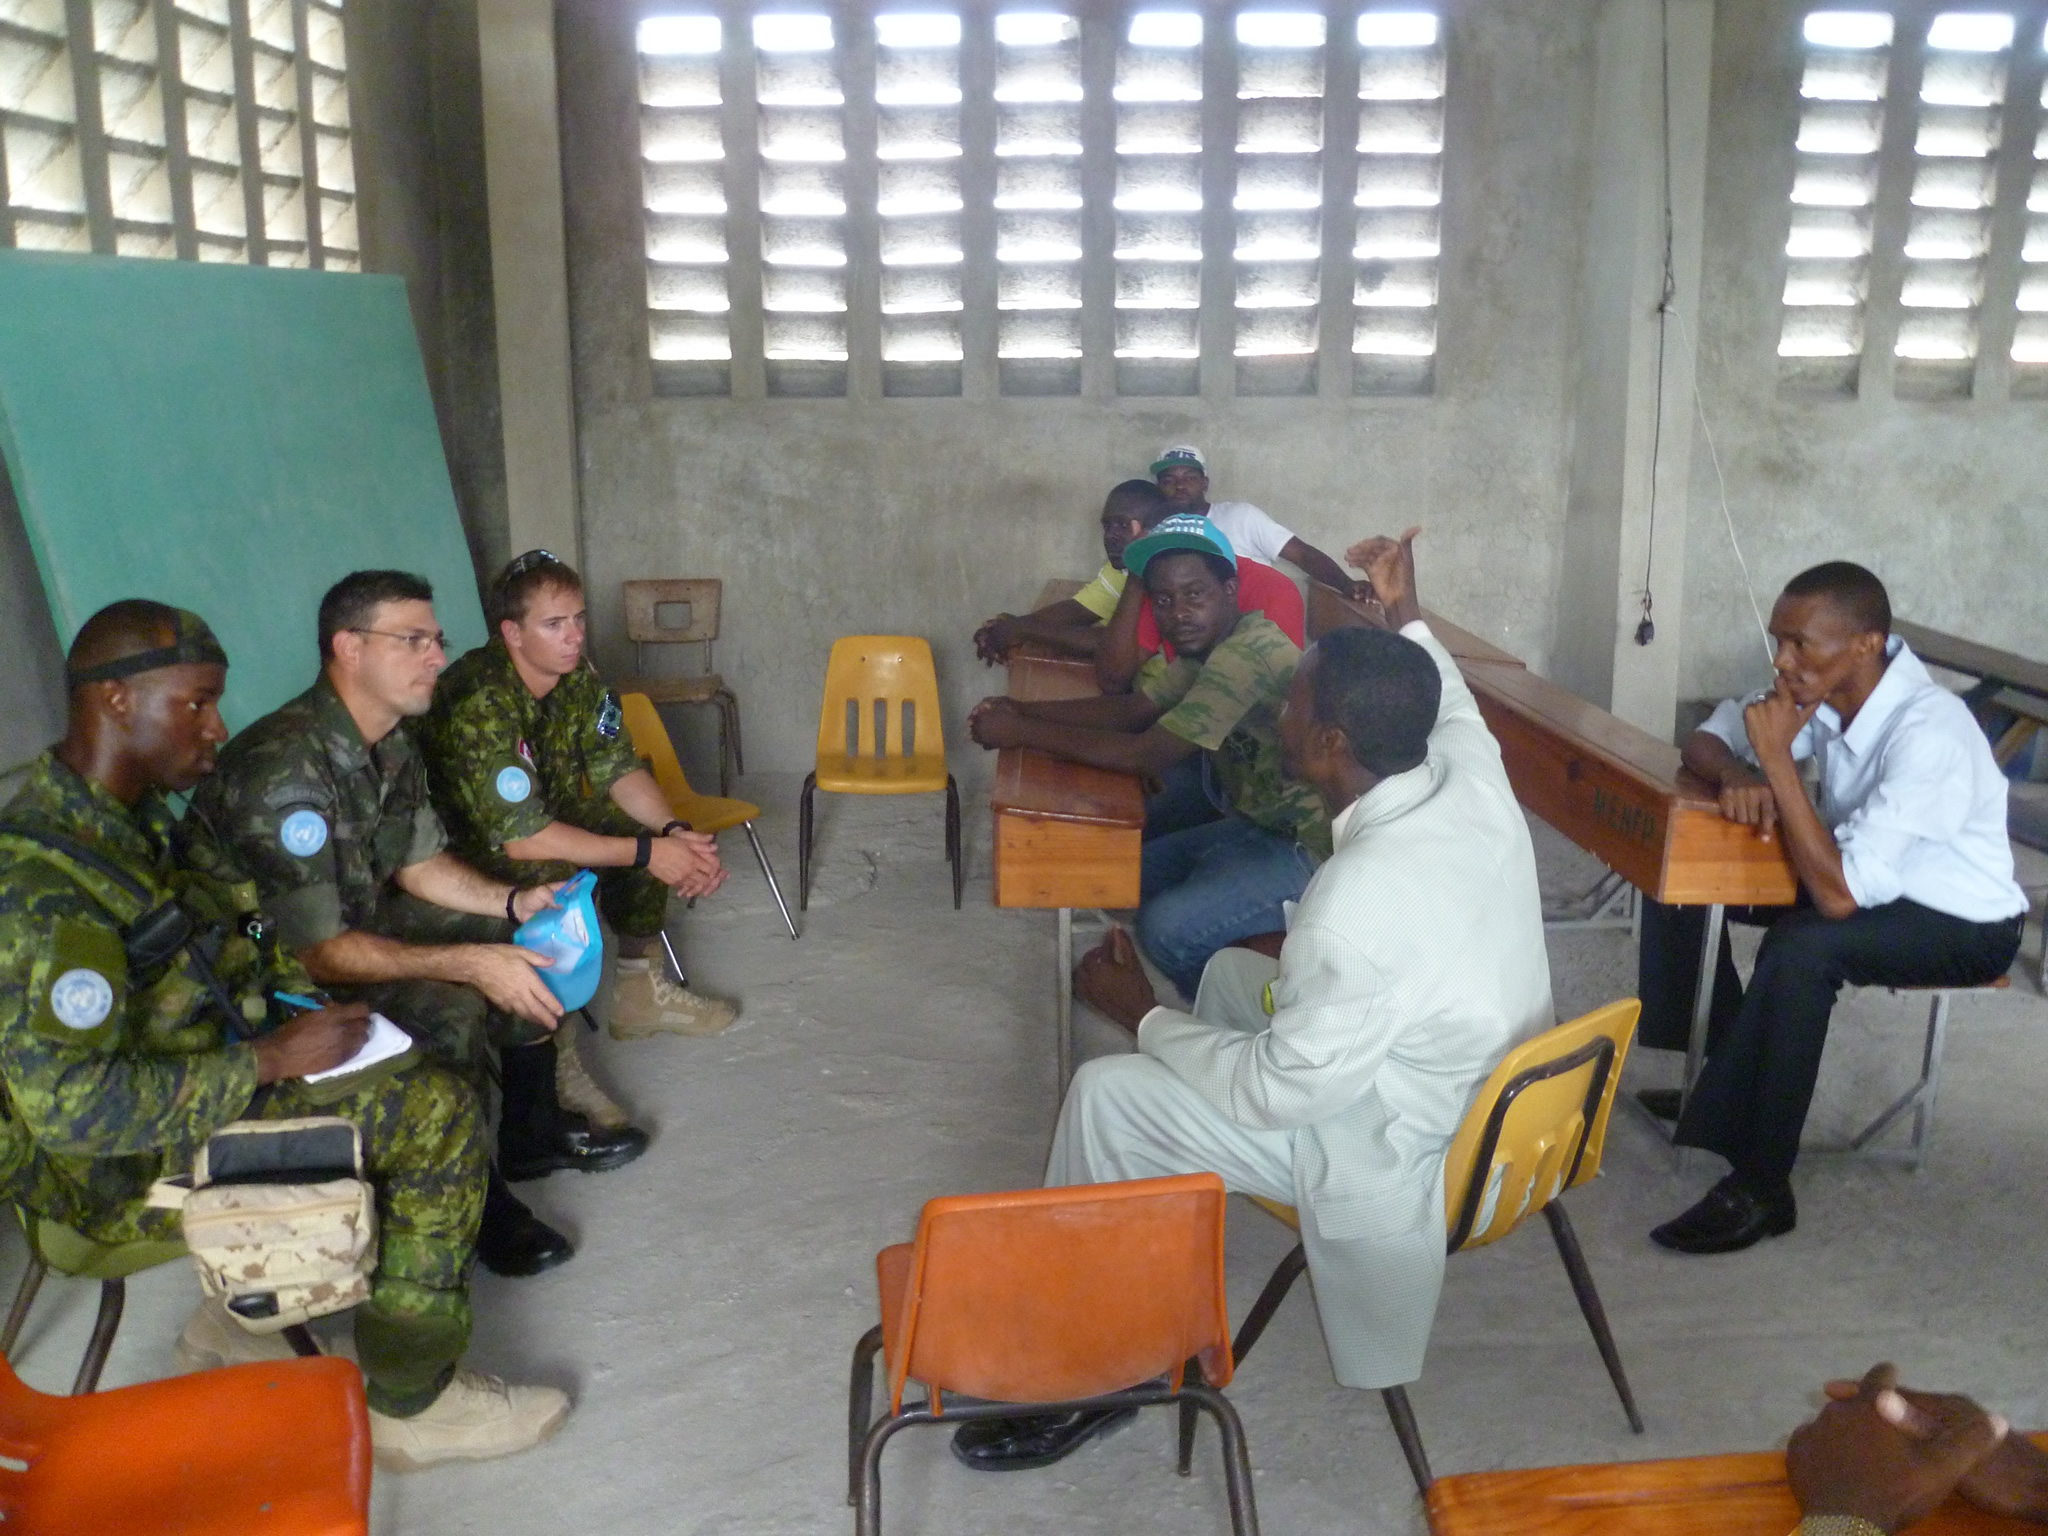 Port-au-Prince, Haiti, 22 June 2013: Soldiers participate in a neighbourhood meeting in their area of operation. Canadian Forces members, in collaboration with Brazilian troops, are participating in stability and security efforts in Haiti. (Photo: Canadian Armed Forces)